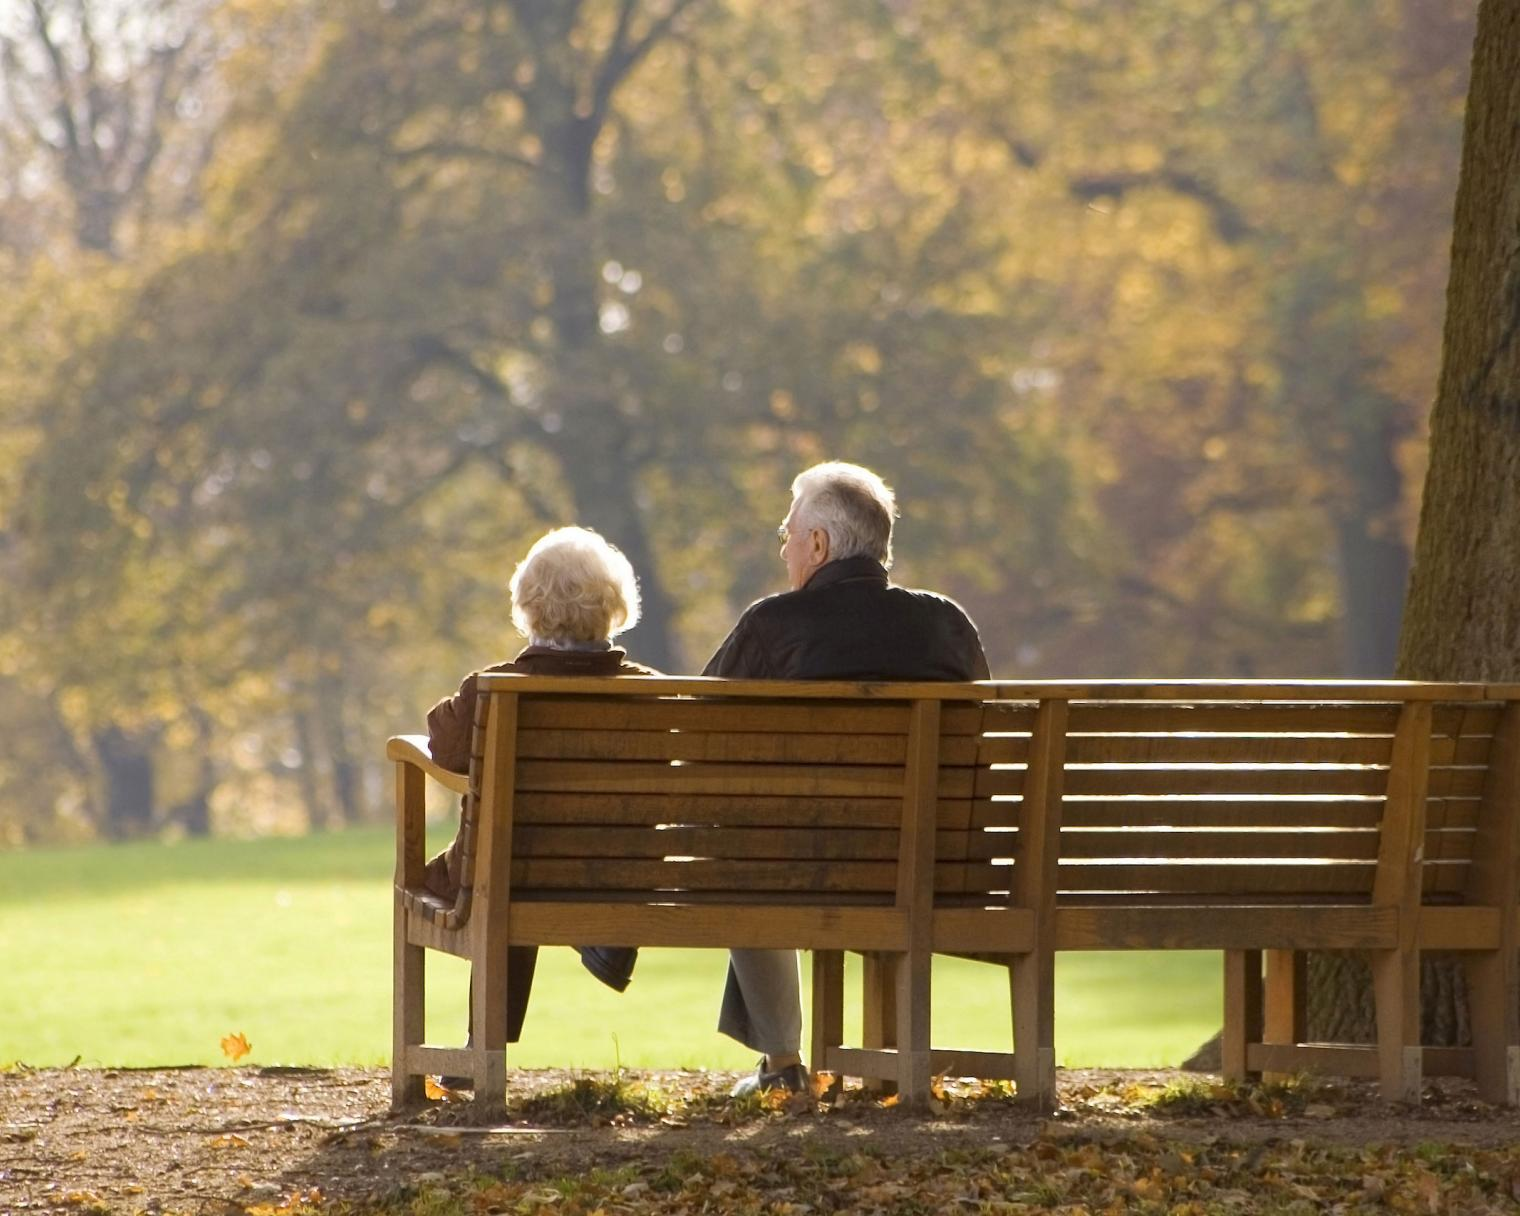 Elderly couple sitting together on a bench in a park